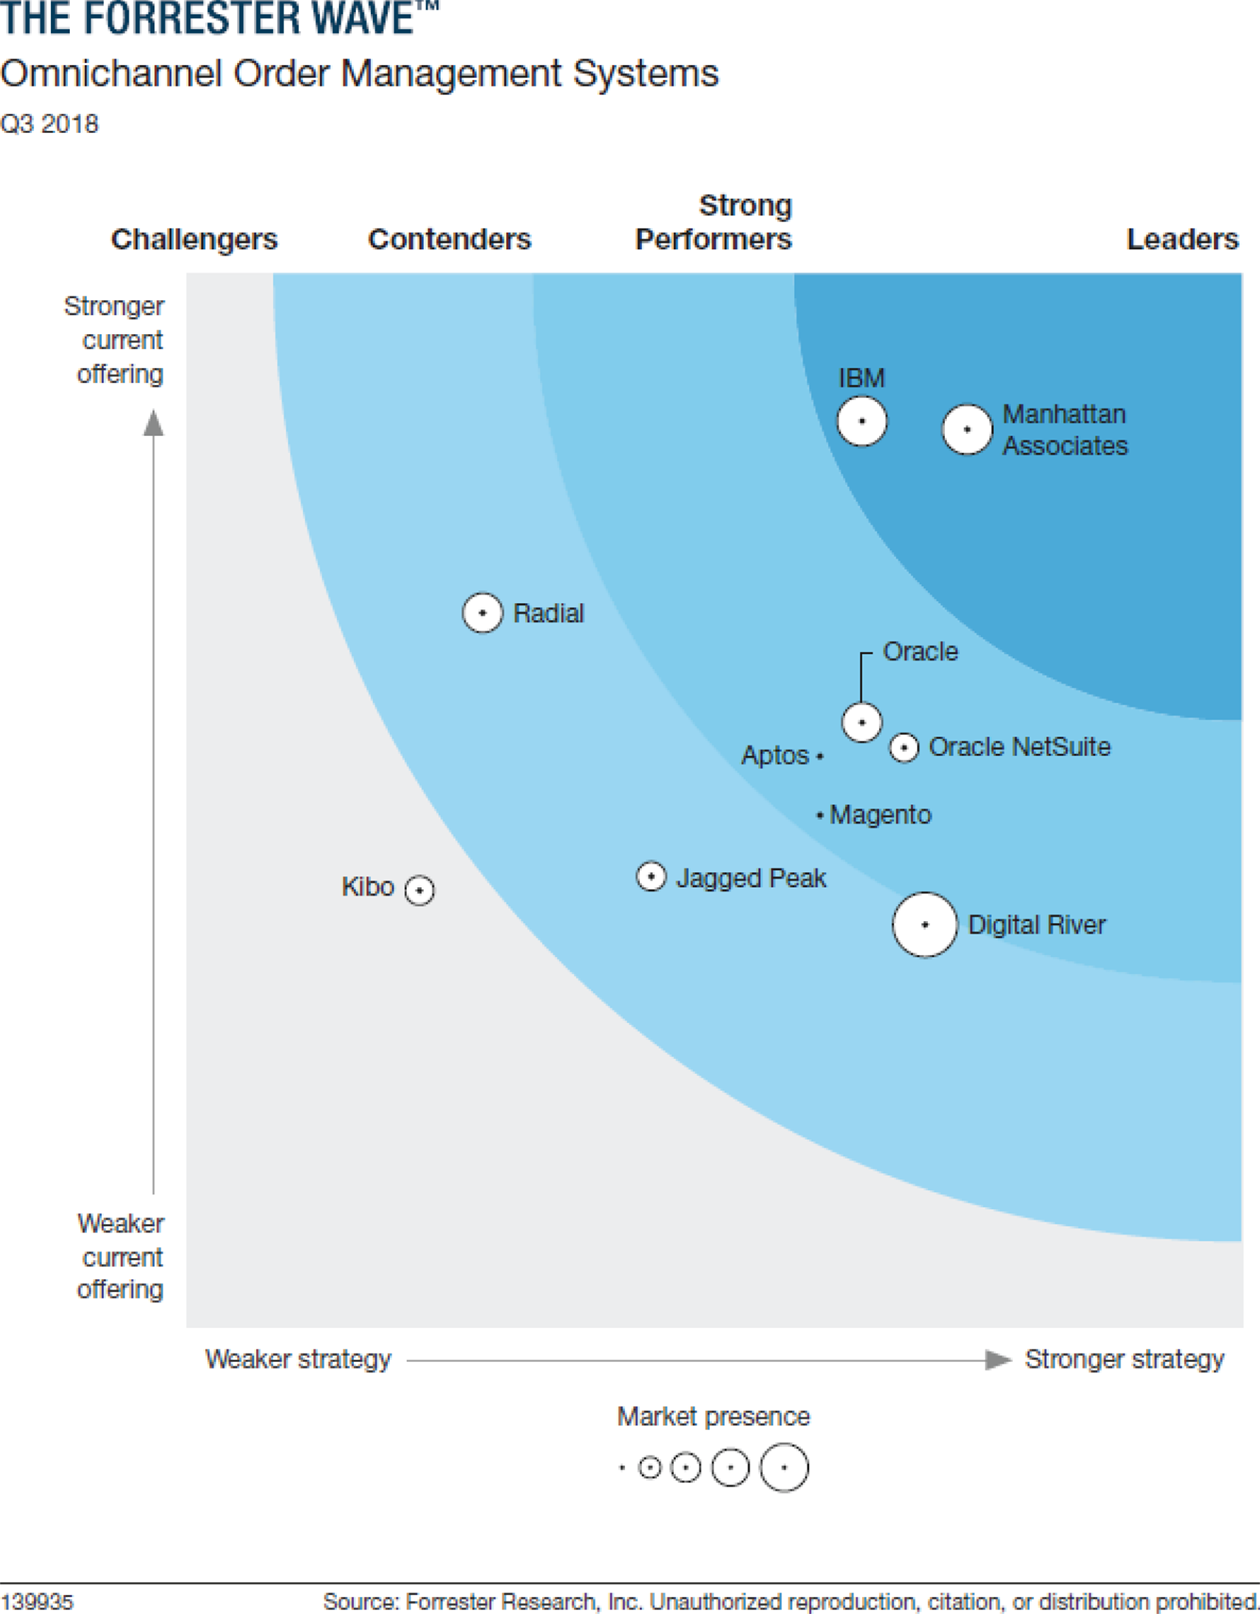 Forrester names Manhattan Associates a Leader in The Forrester Wave